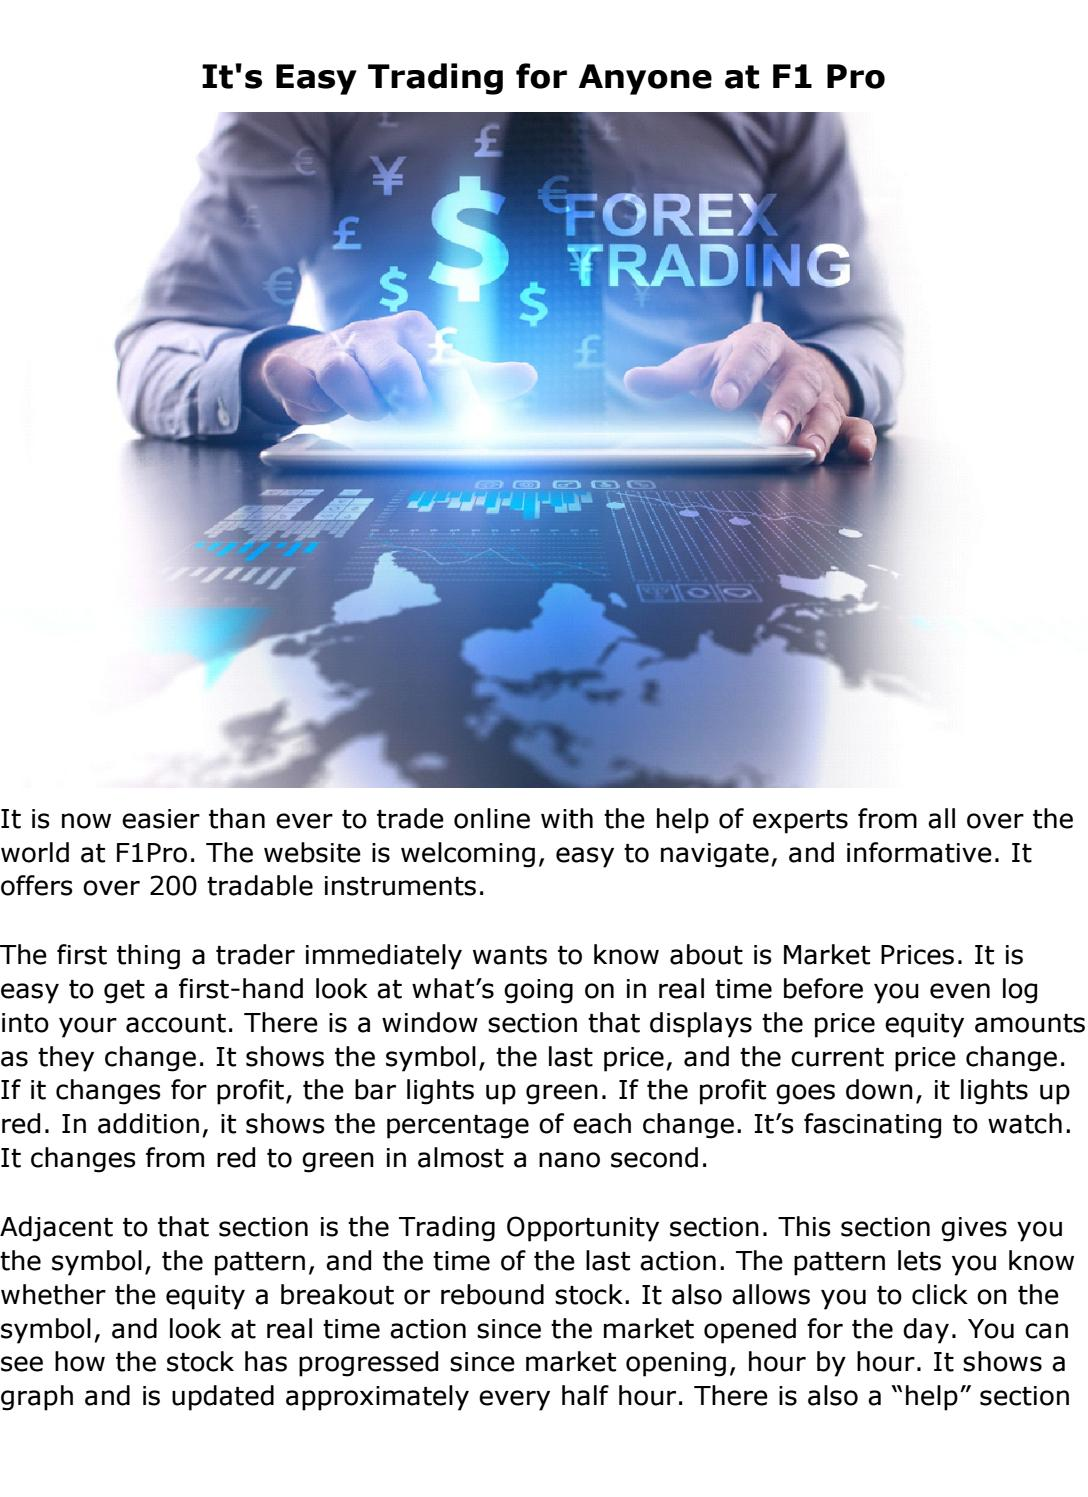 Its Easy Trading For Anyone At F1 Pro